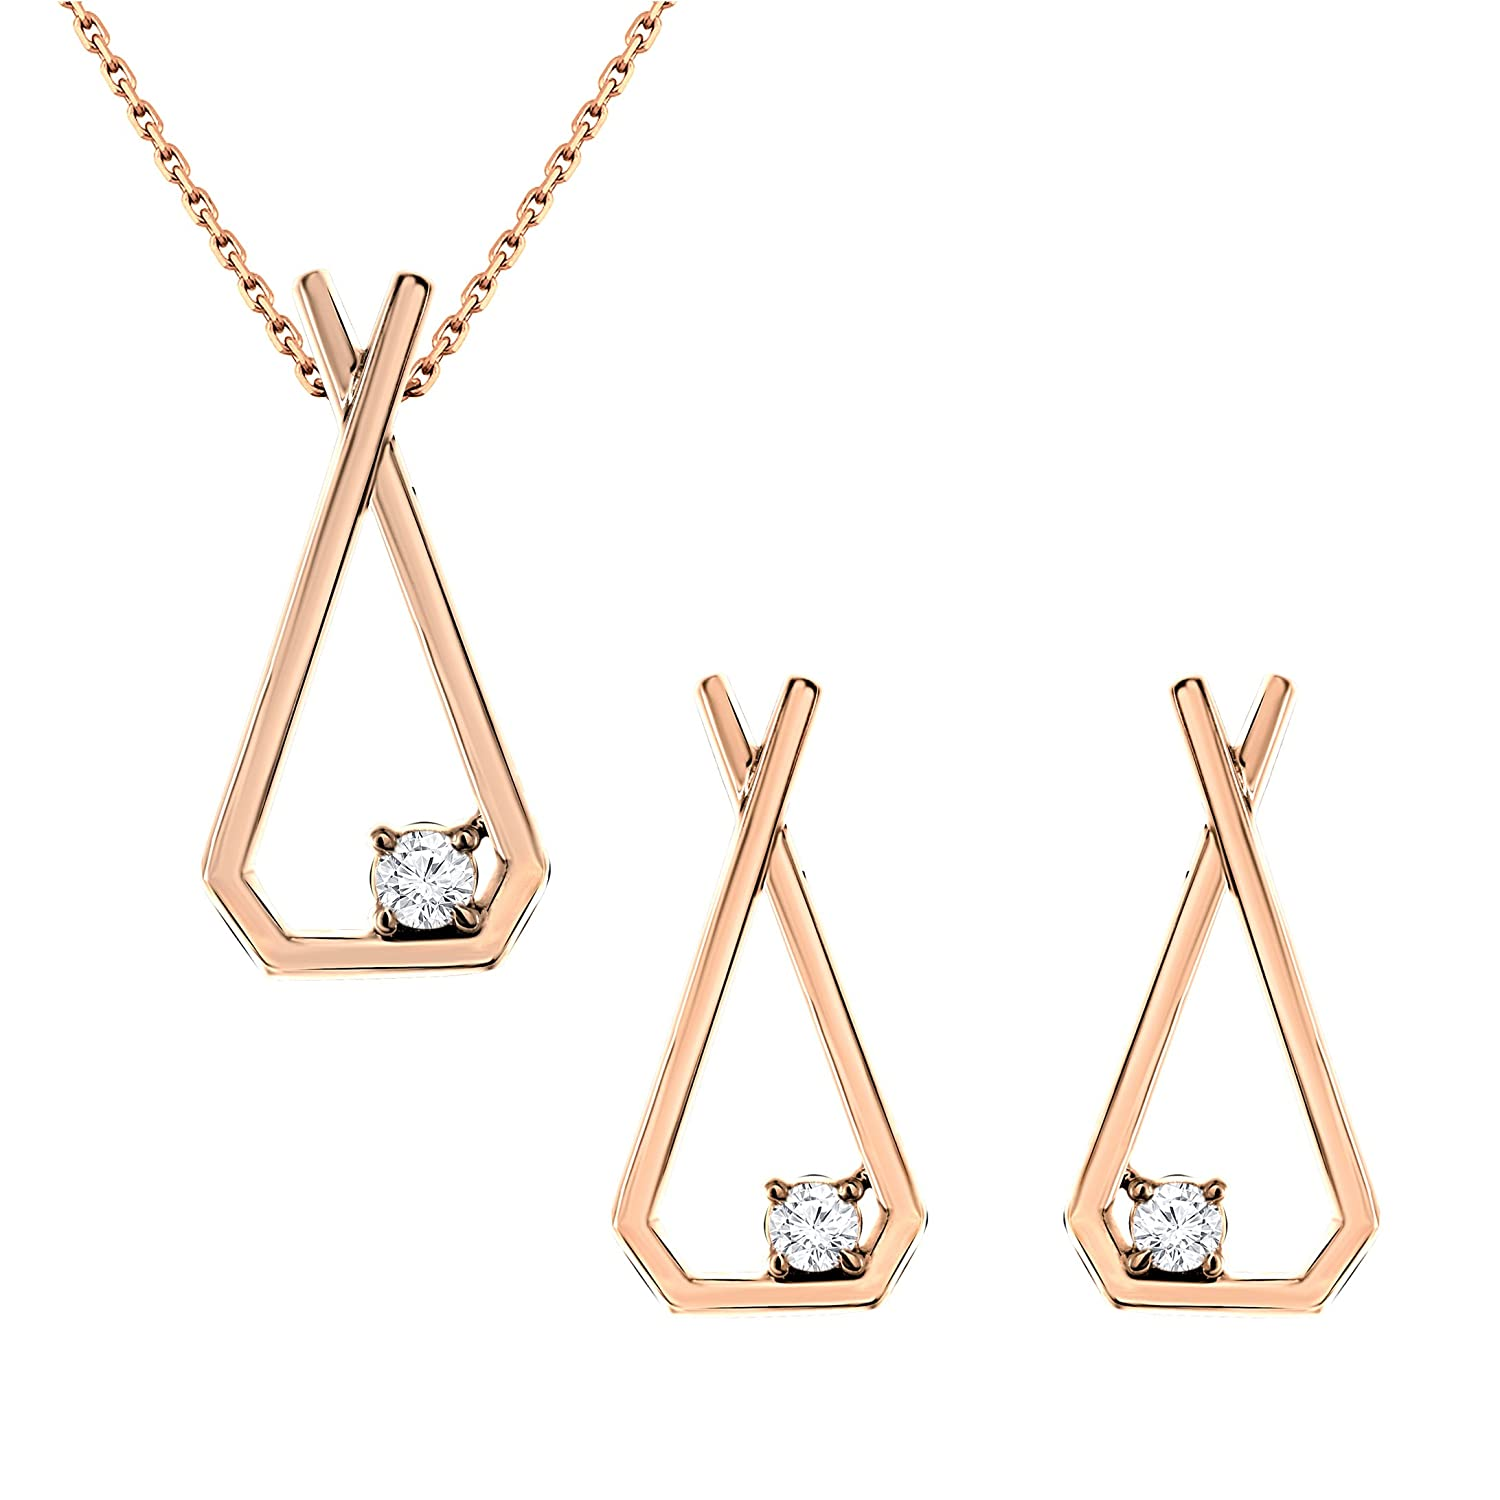 0.20 Ct. 18K Gold Round White Natural Diamond Stud Earrings Pendant Set Jewelry Set (Free Silver Chain)